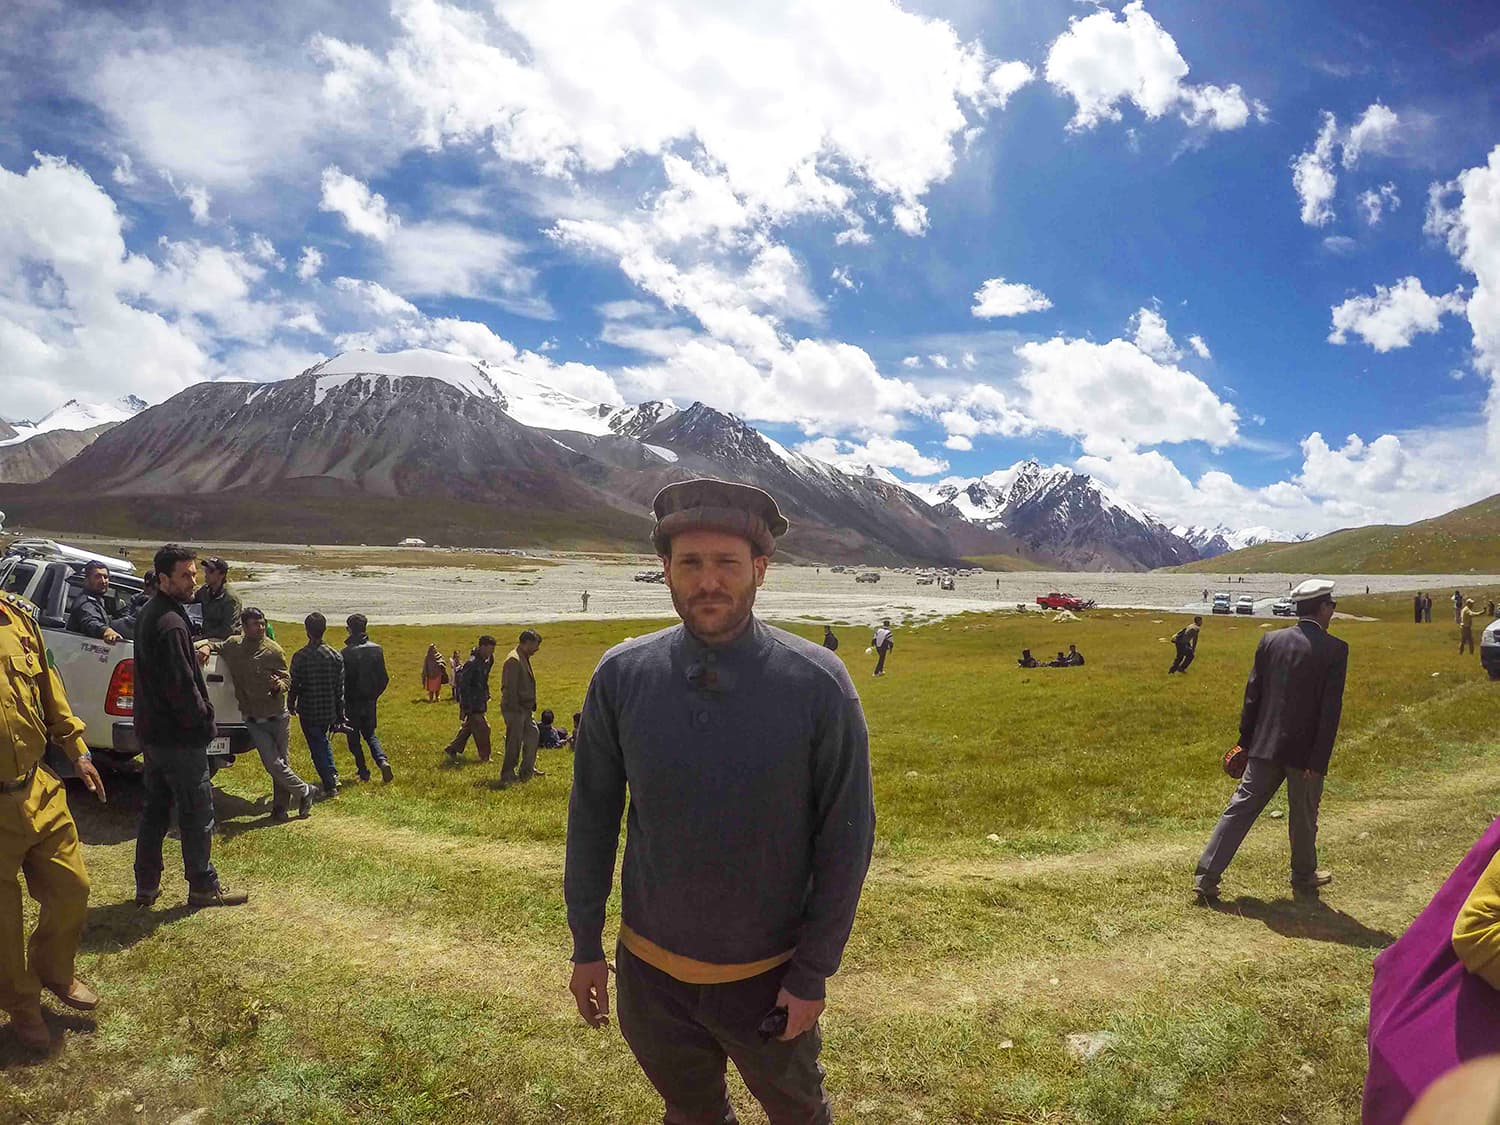 At the stunning Khunjerab National Park trying really hard to fight altitude sickness. —Madeeha Syed